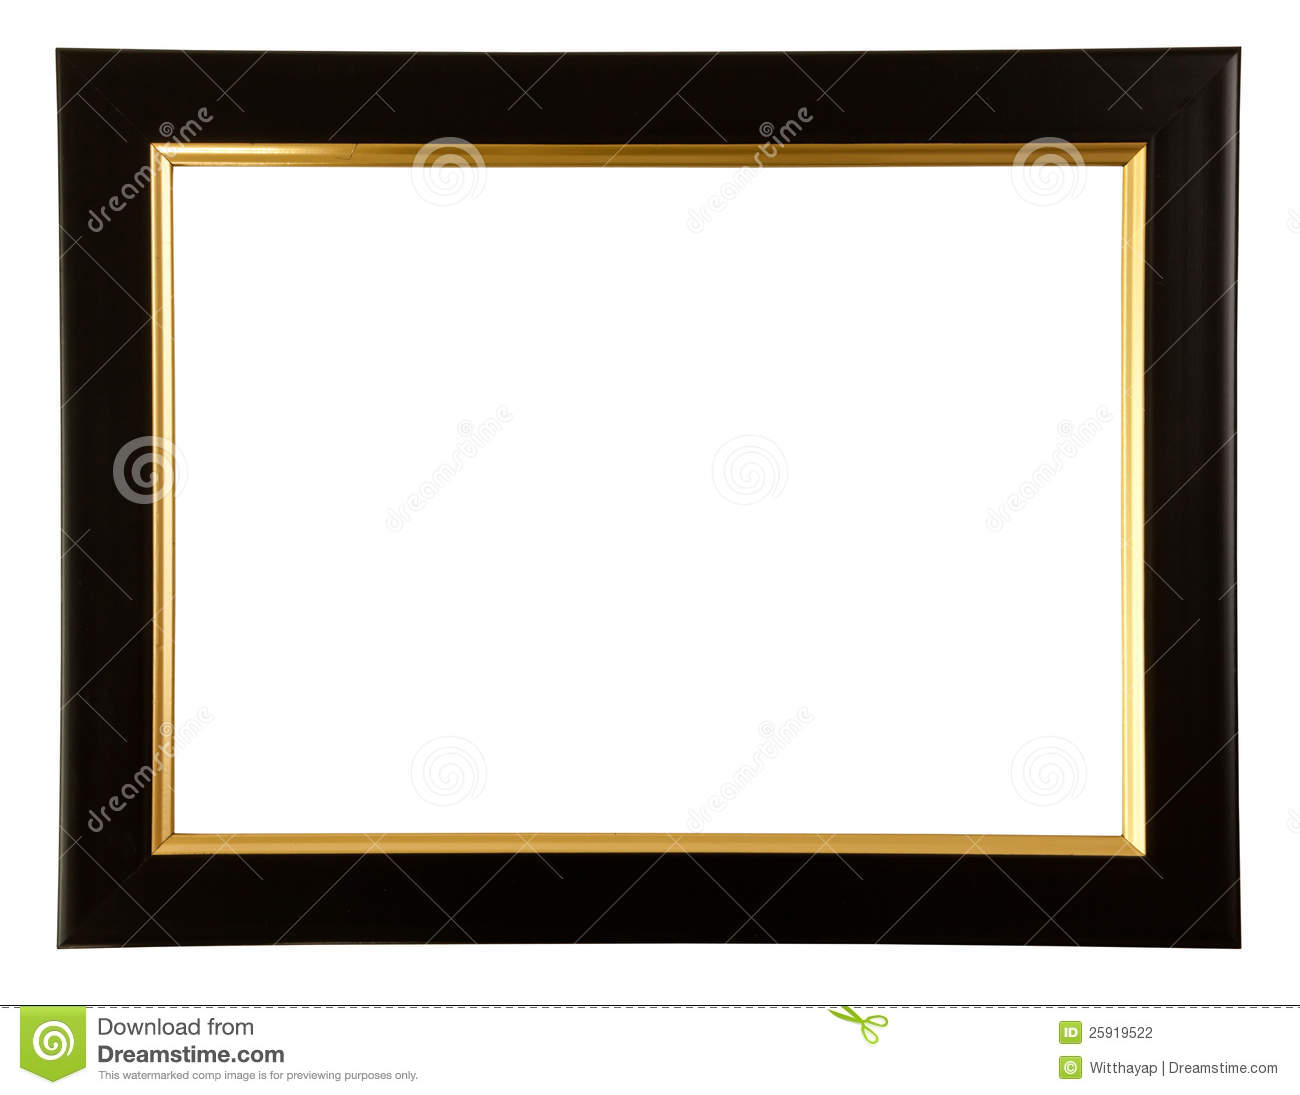 Gold and black color frame stock photo image of grunge 25919522 gold and black color frame jeuxipadfo Image collections